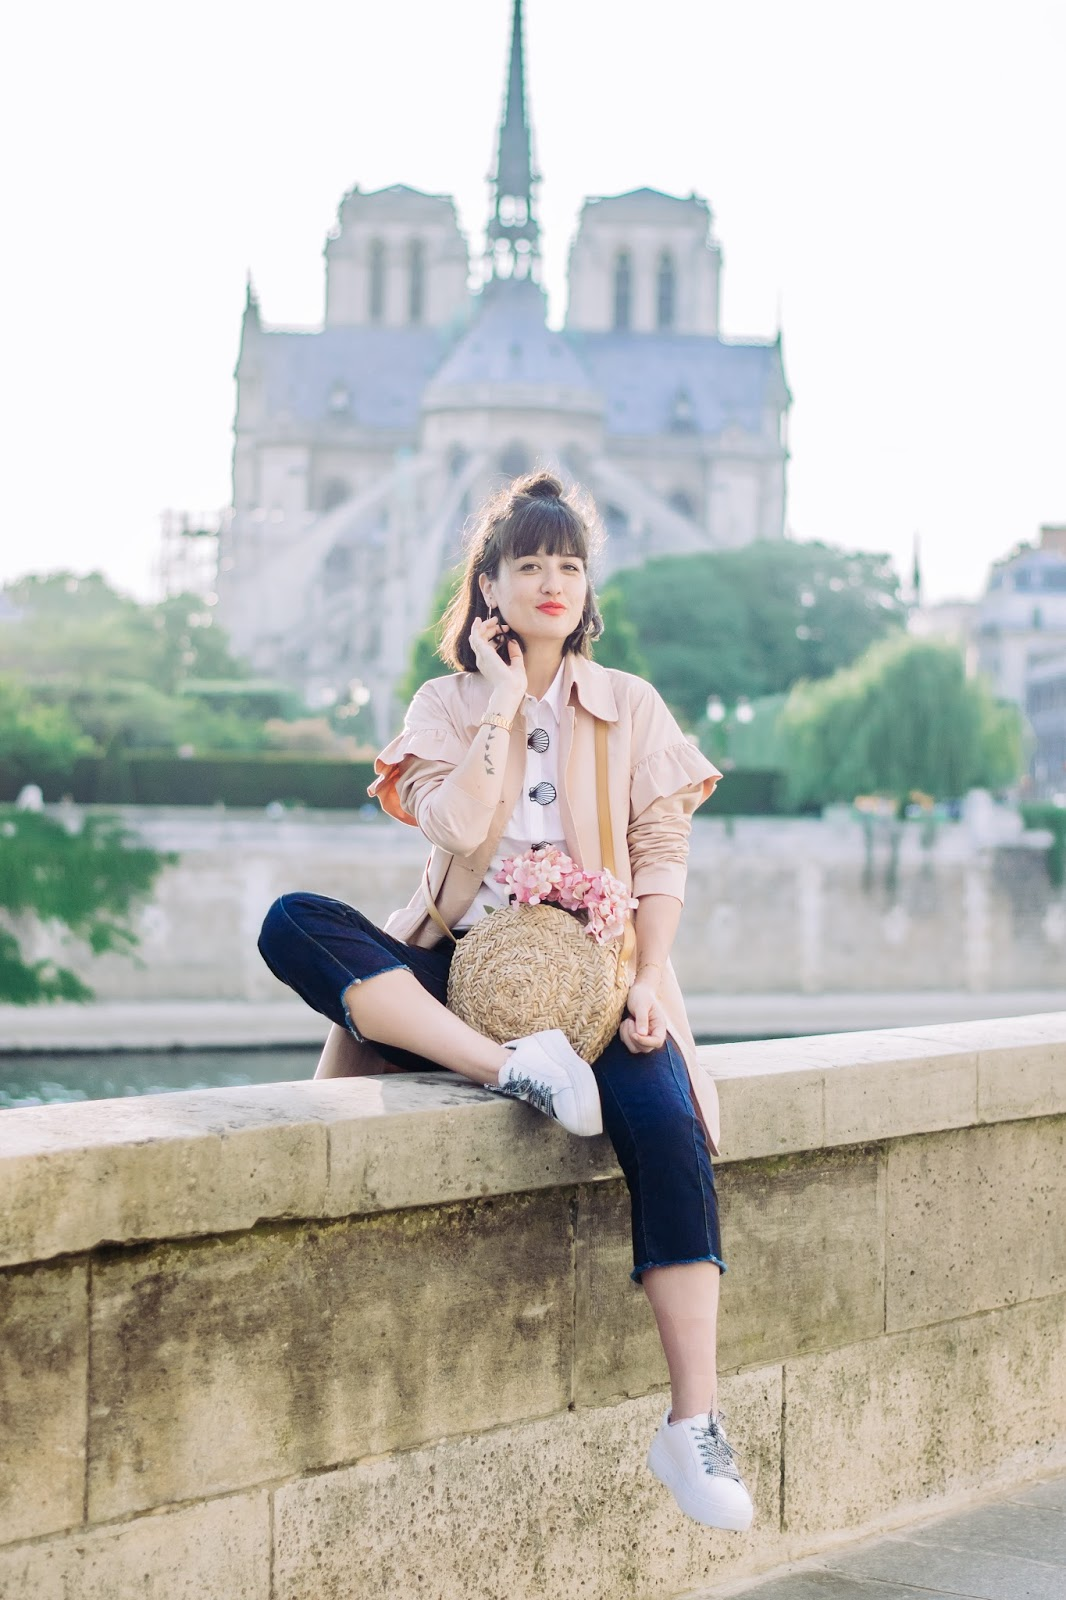 meetmeinparee-paris-mode-style-look-fashion-streetstyle-cute-parisian